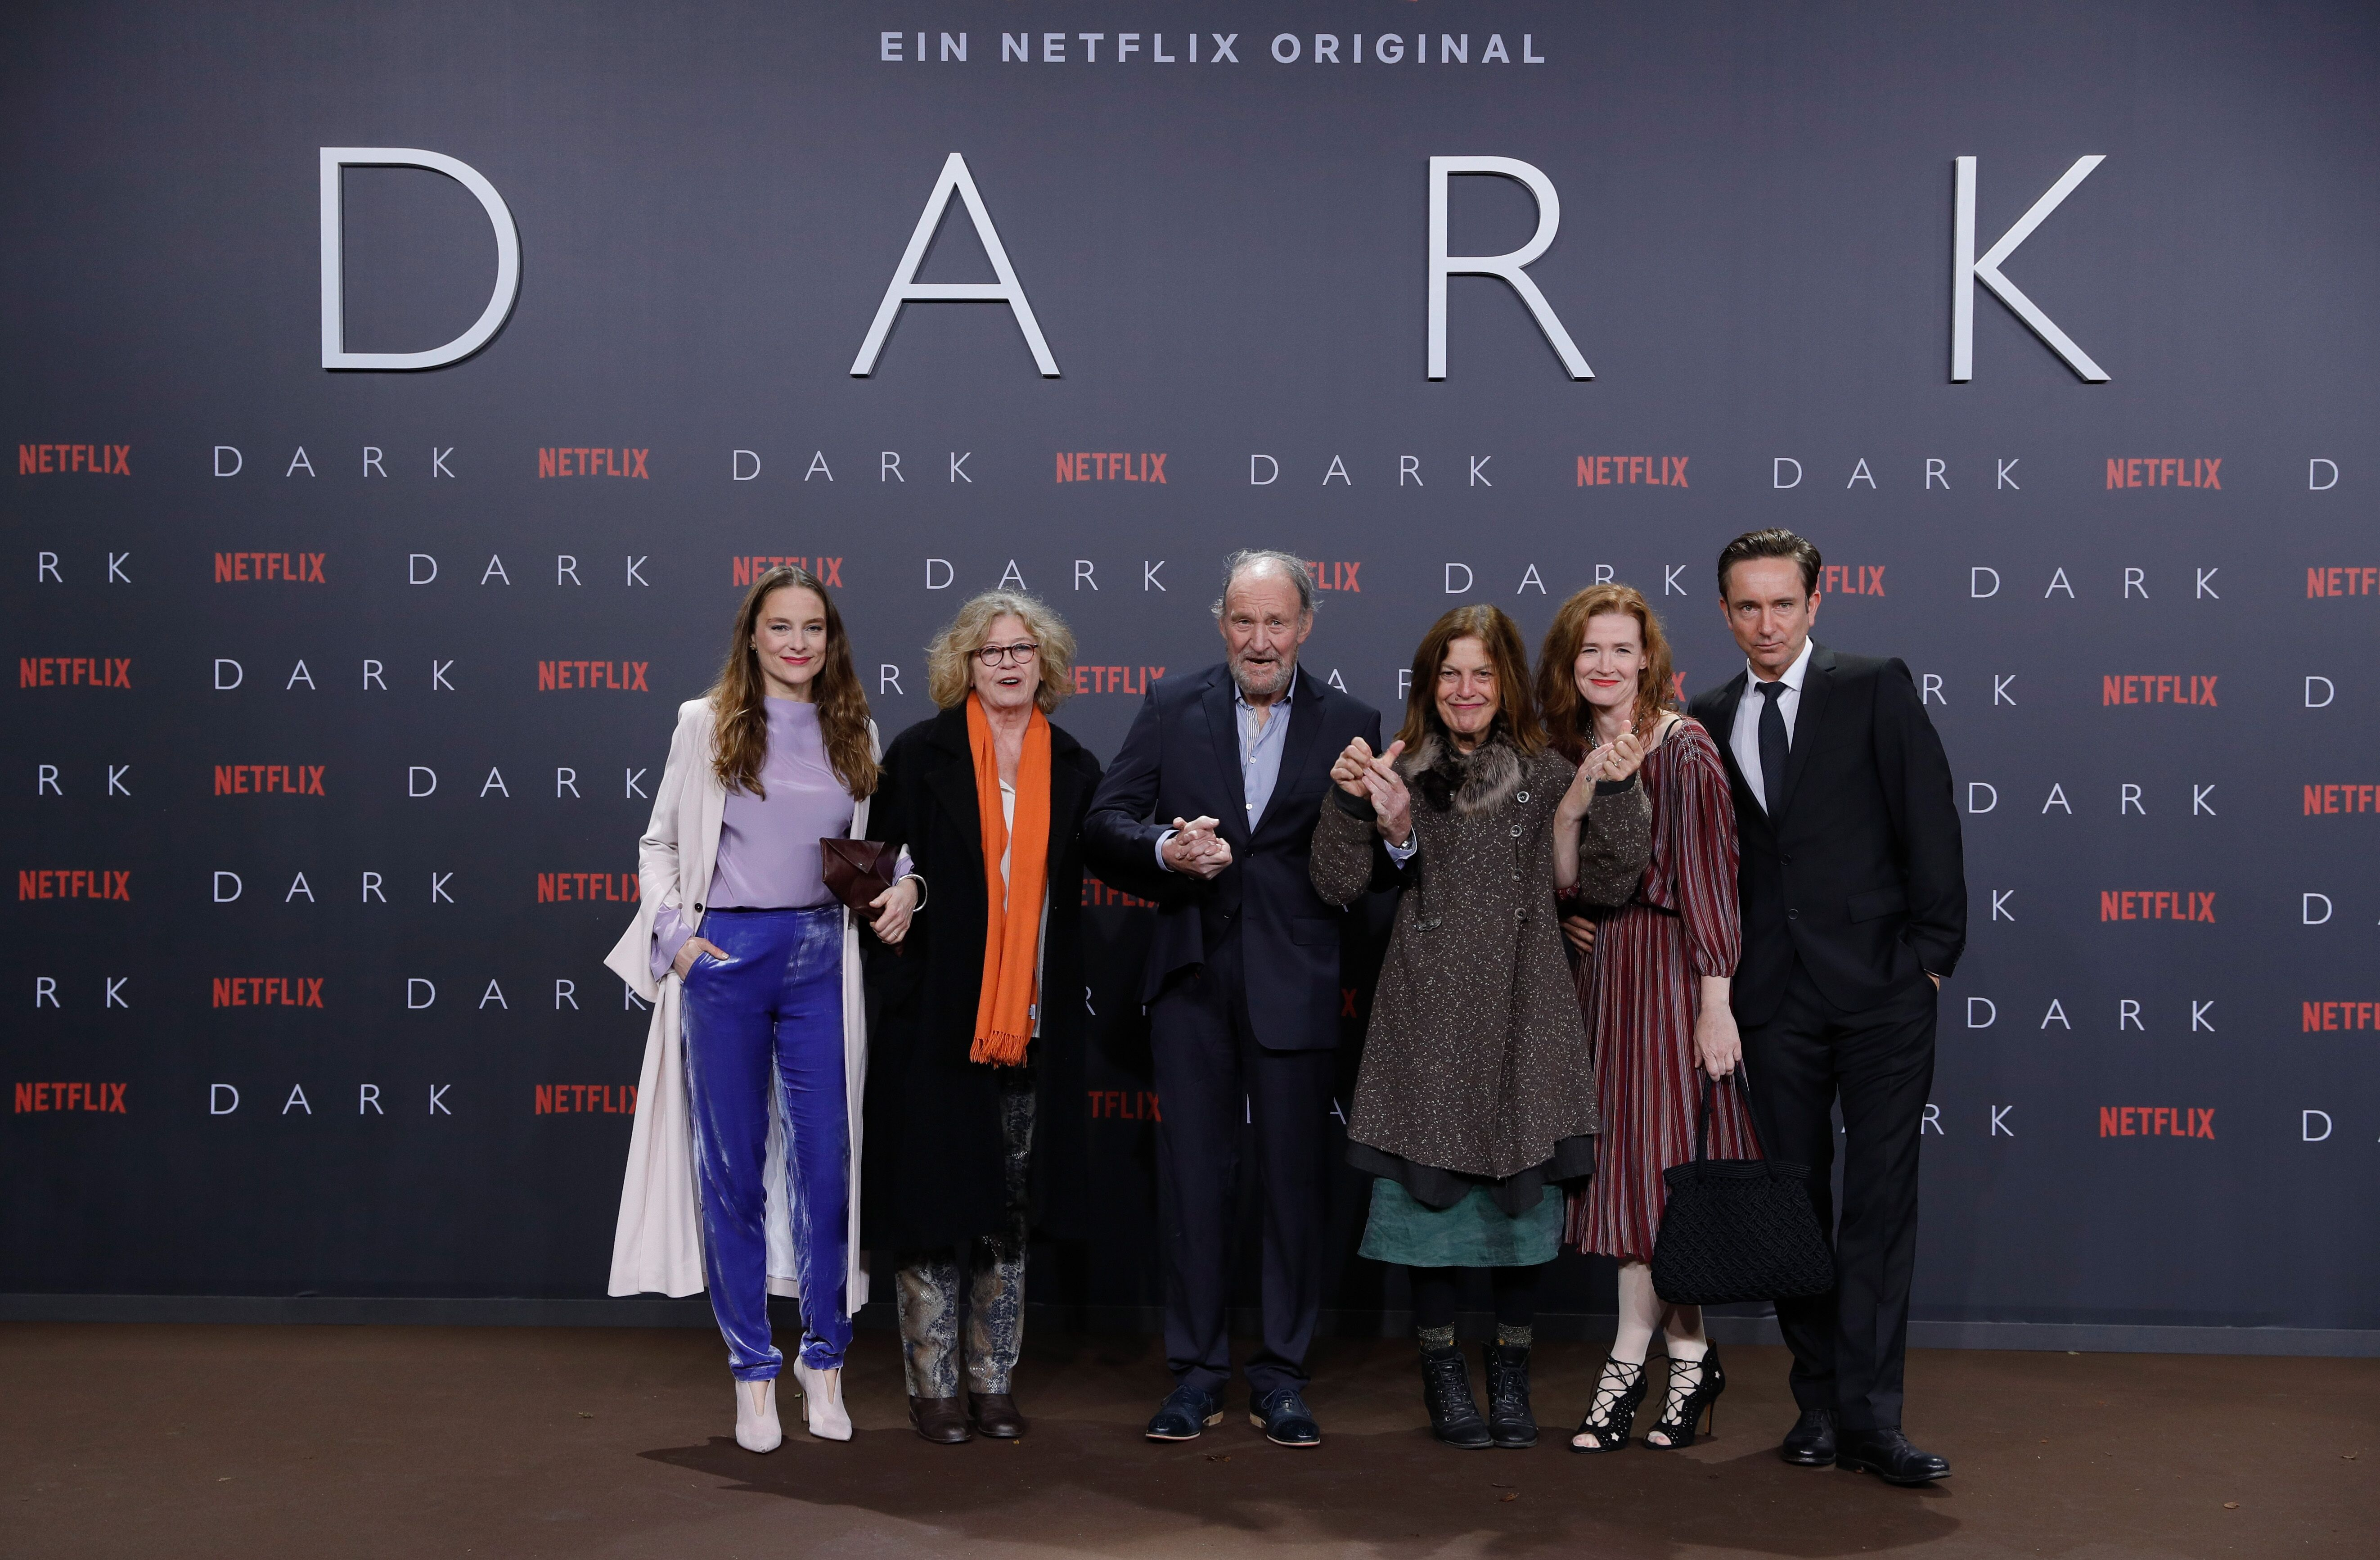 Netflix's Dark goes back to the future